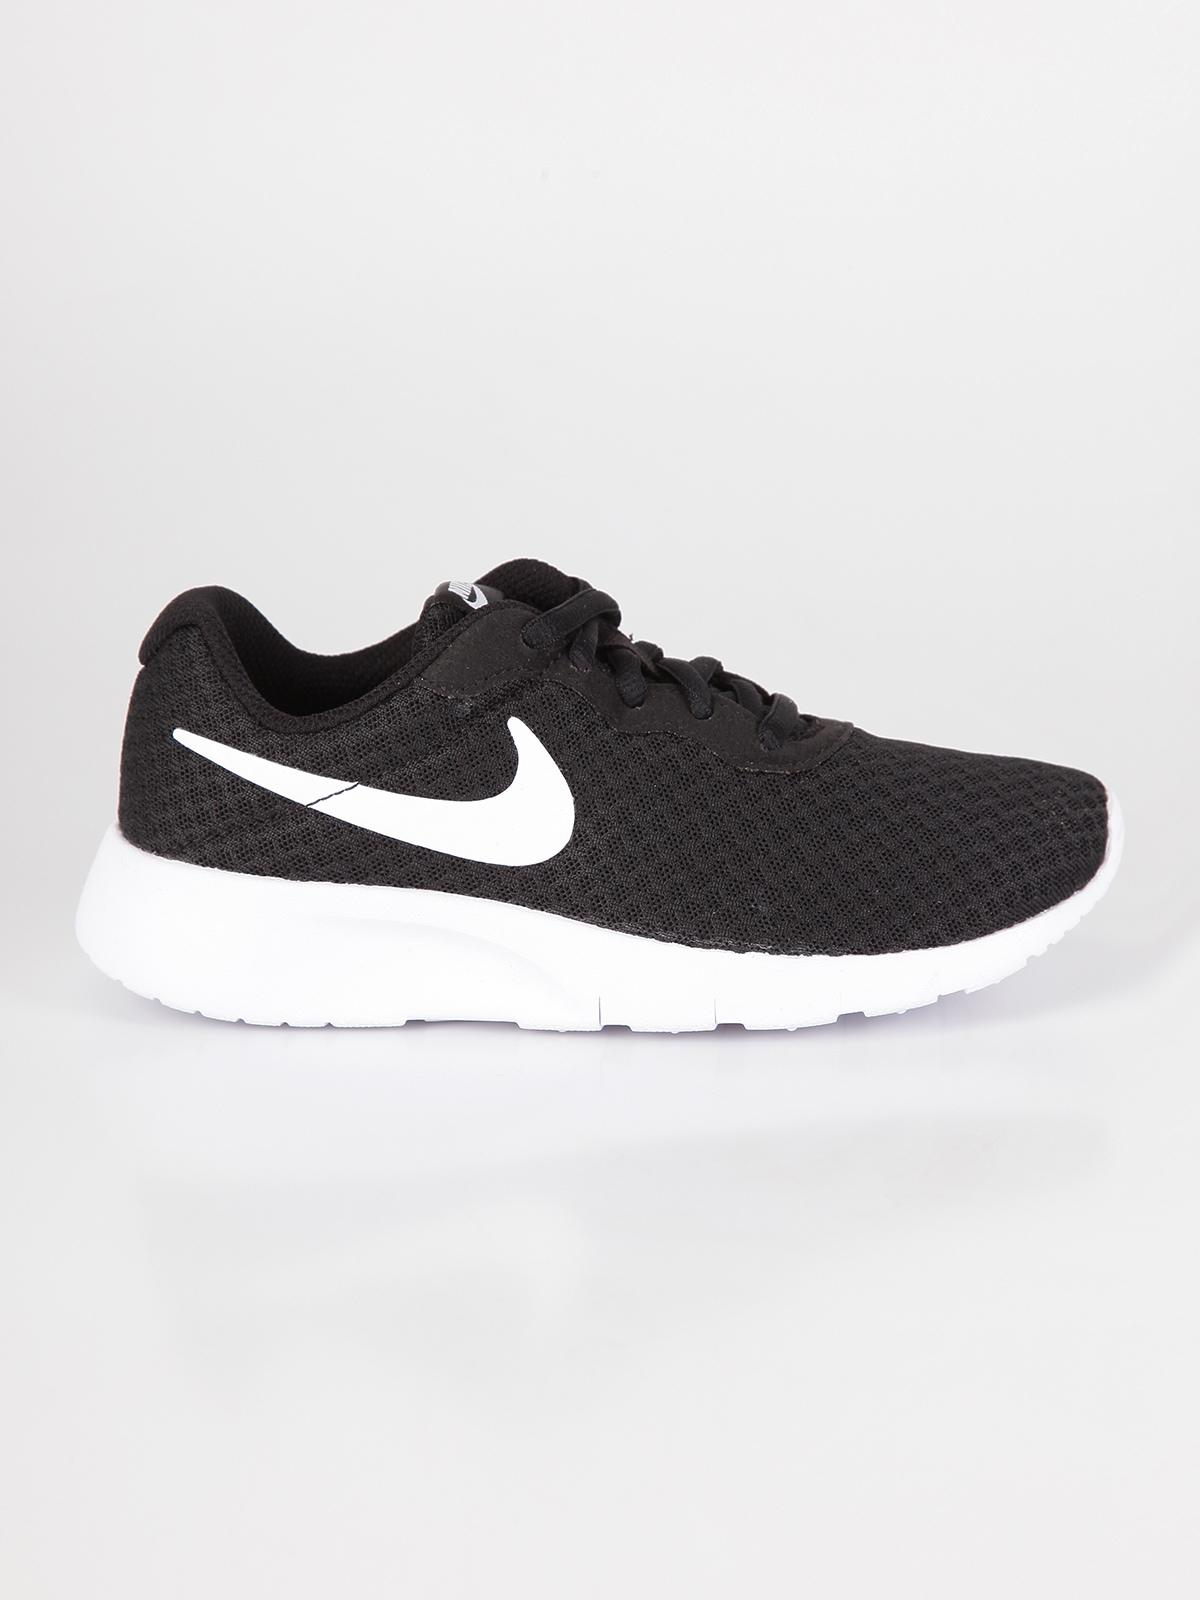 Nike Sports shoes and clothing for men, women and children